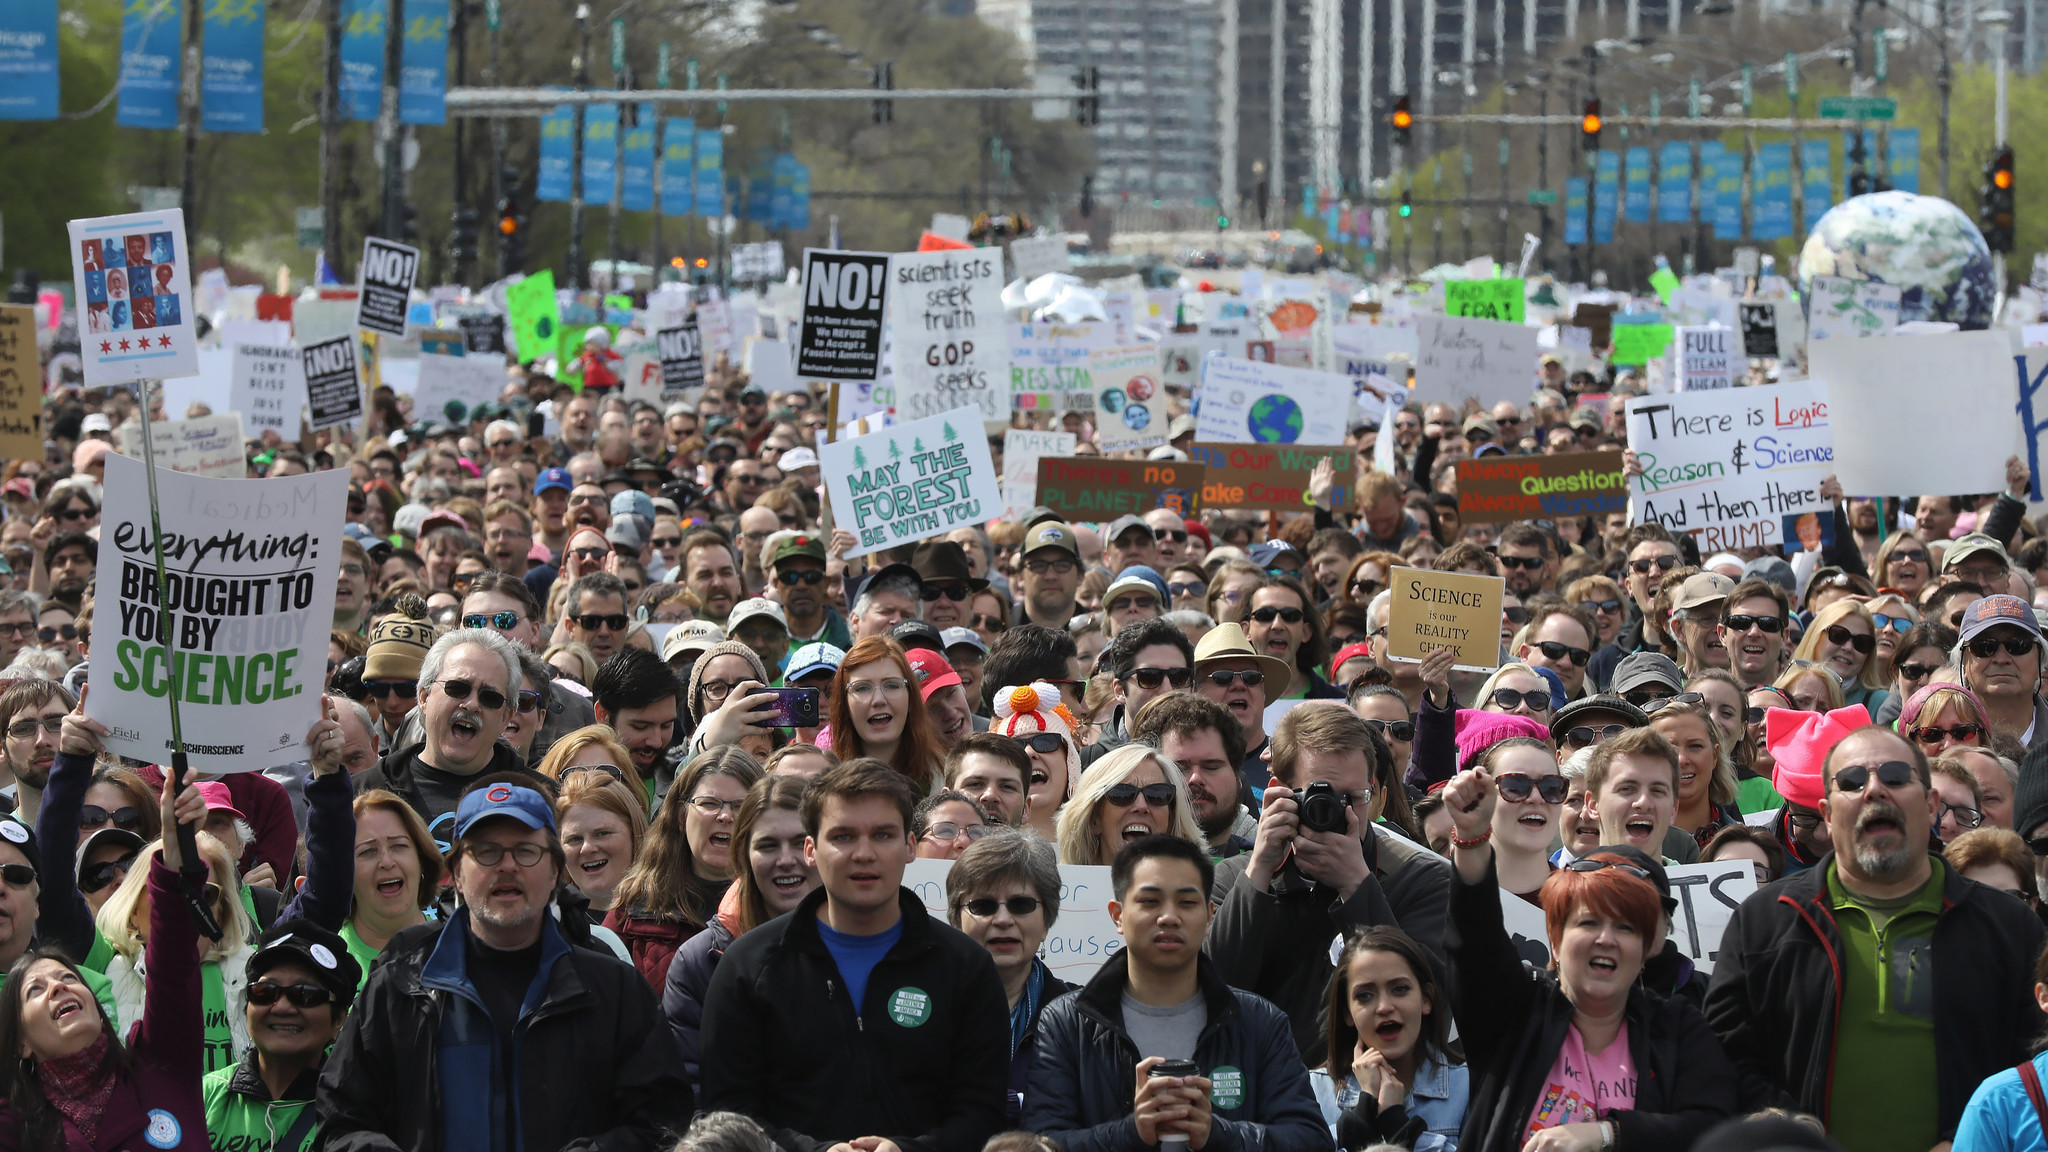 chicagotribune.com - March for Science Chicago draws 40,000 people to 'defend the basic facts of science'